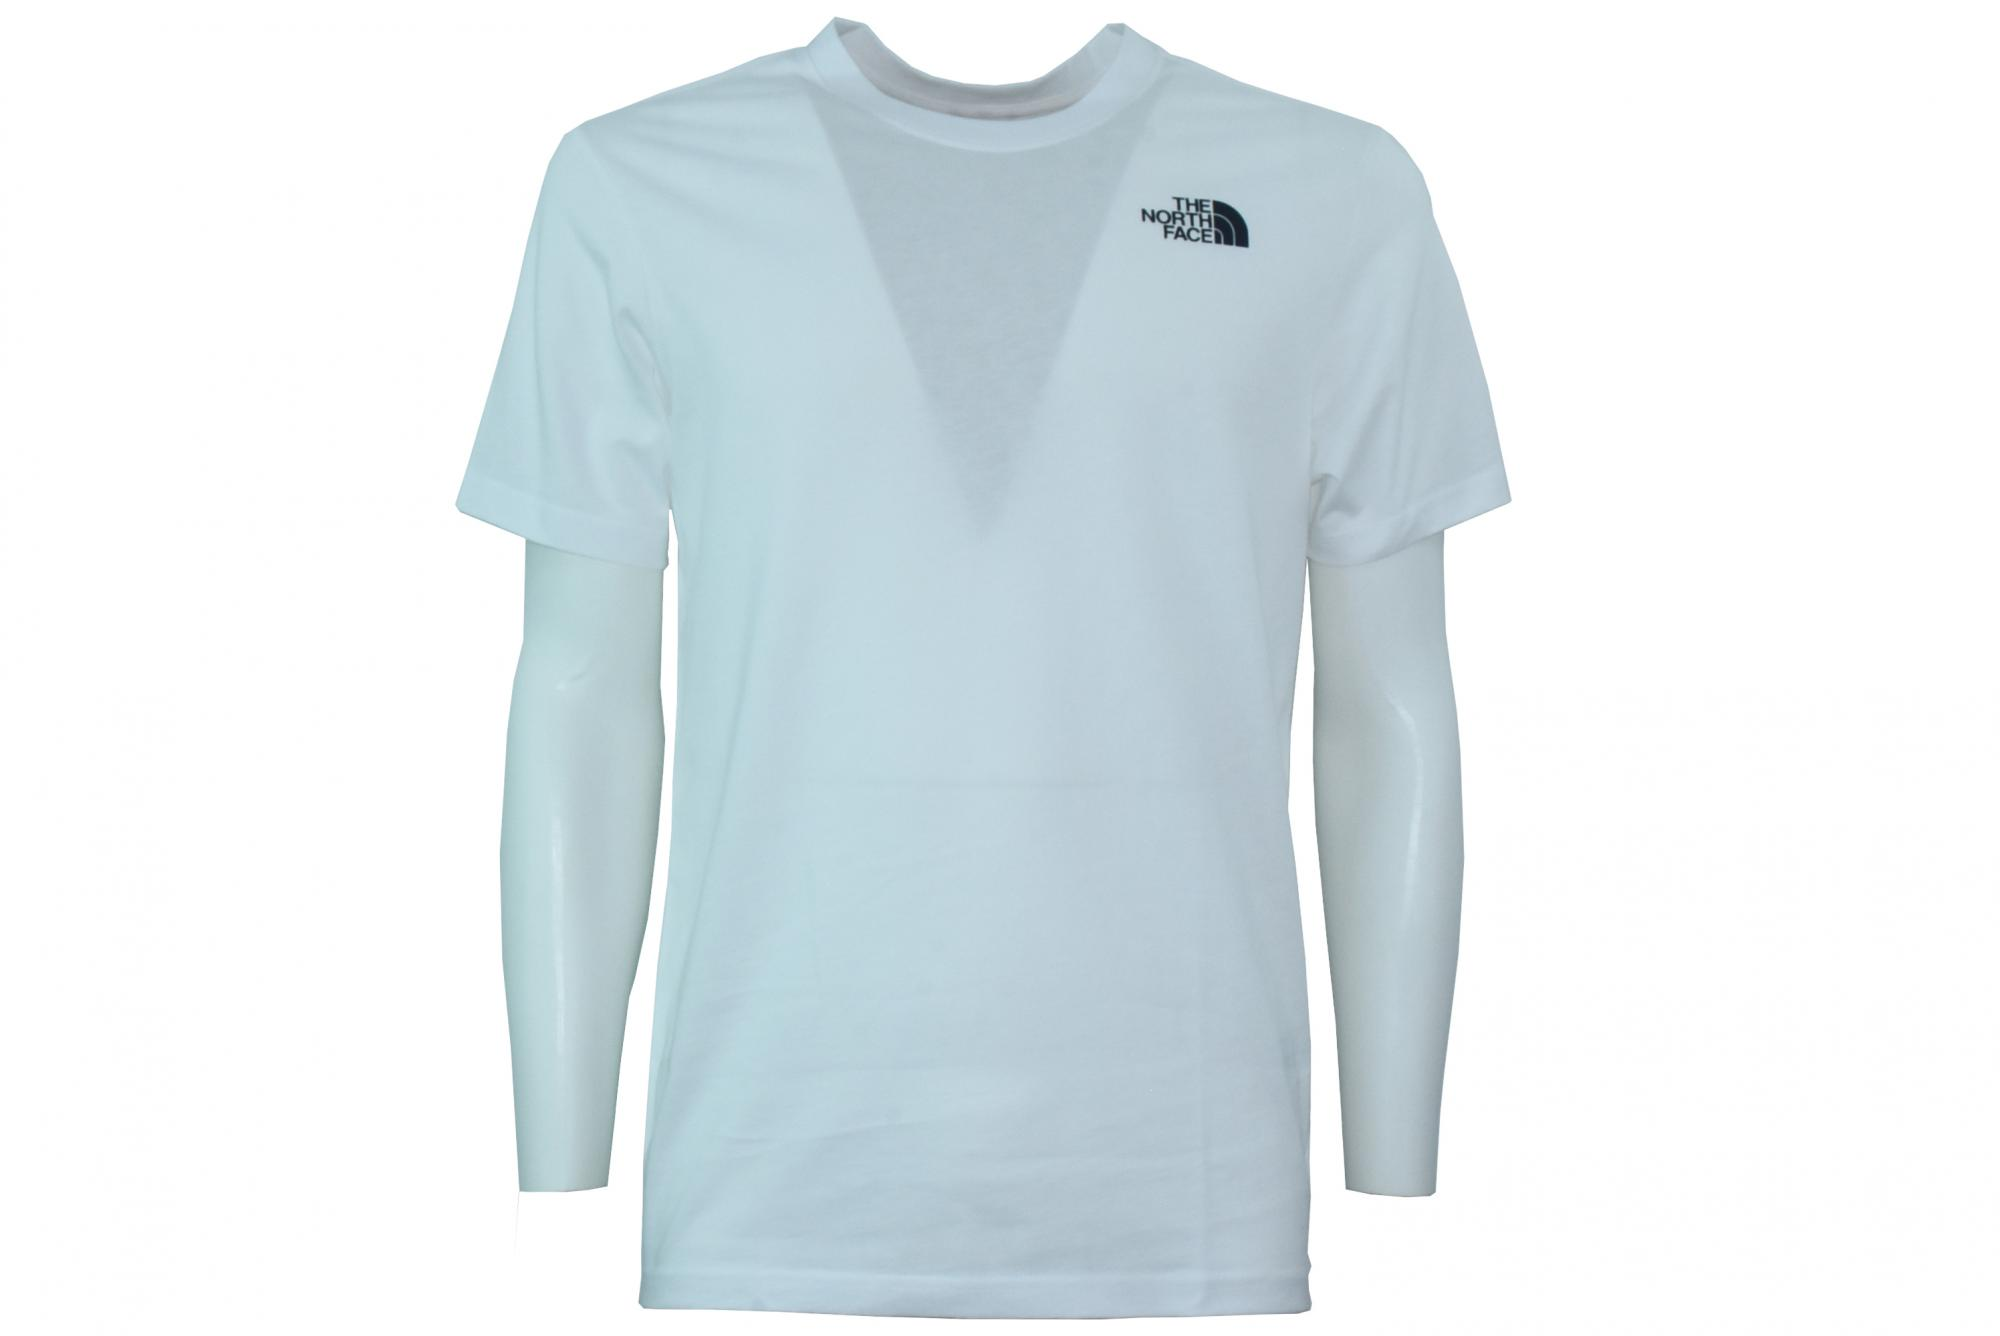 d957c0fca Details about The North Face P19u man short sleeve T-shirt T92ZXESFT M SS  REDBOX CEL TEE